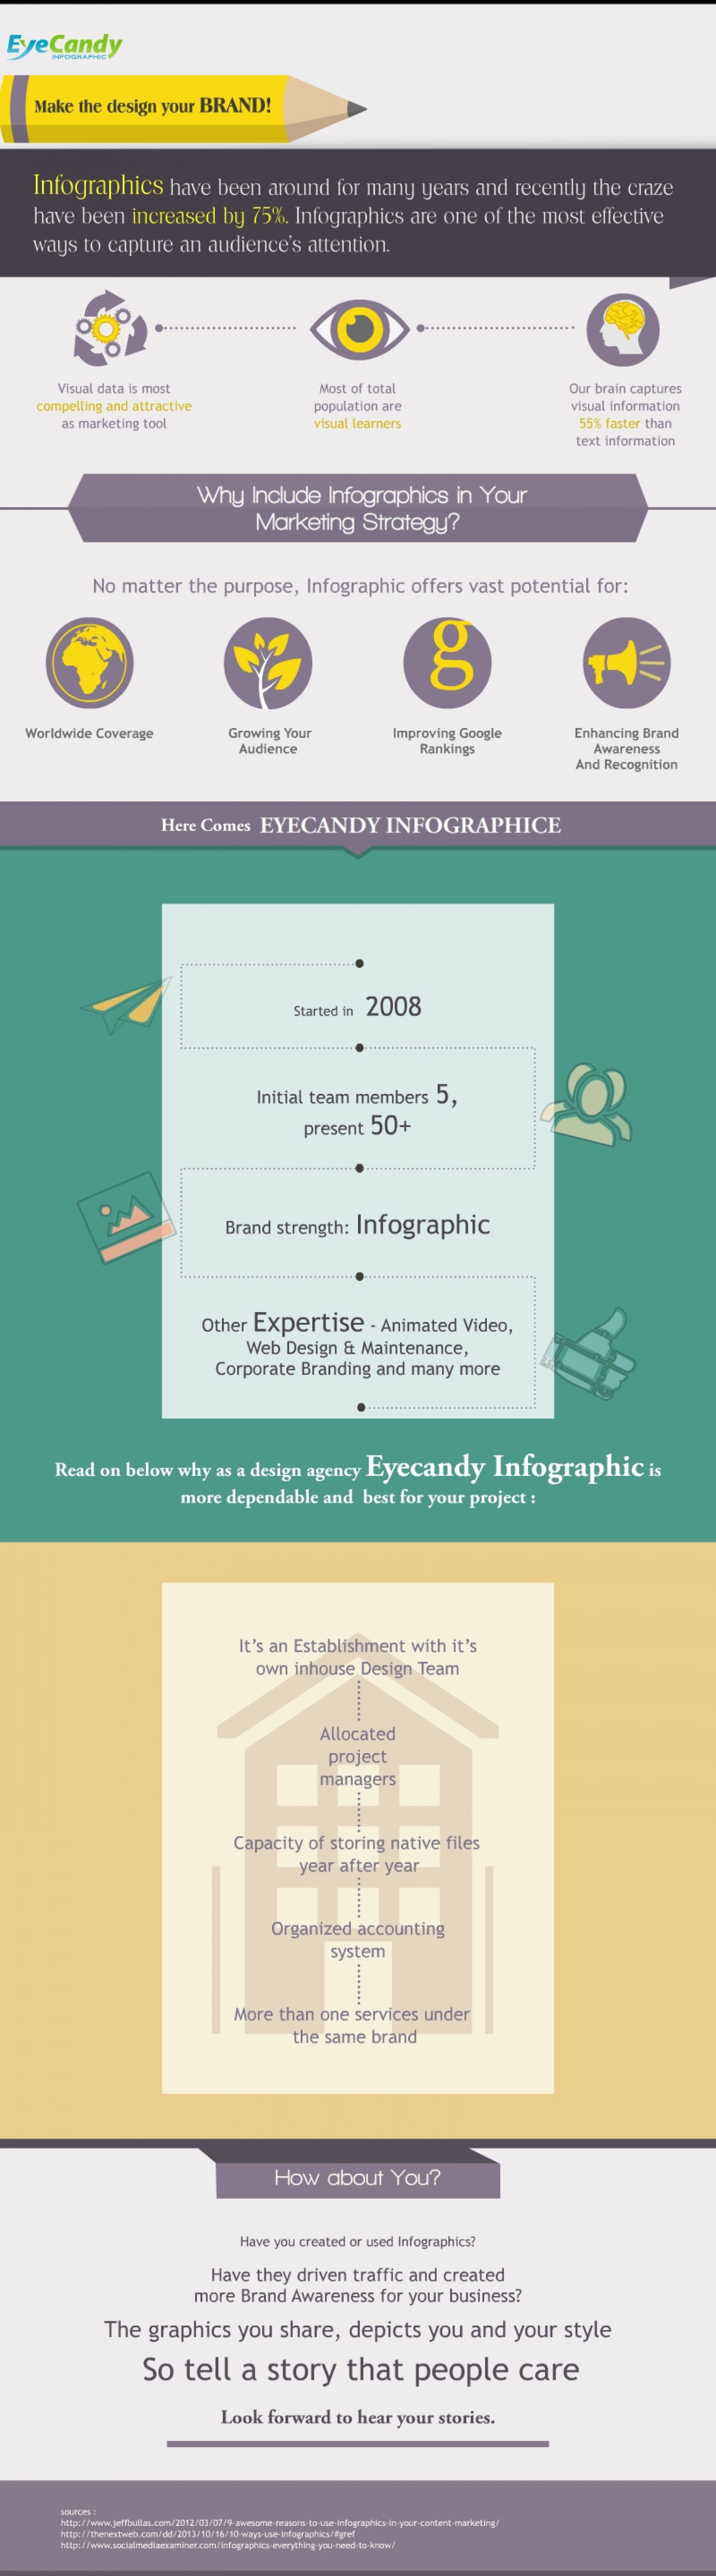 History of Eyecandy Infographic Infographic